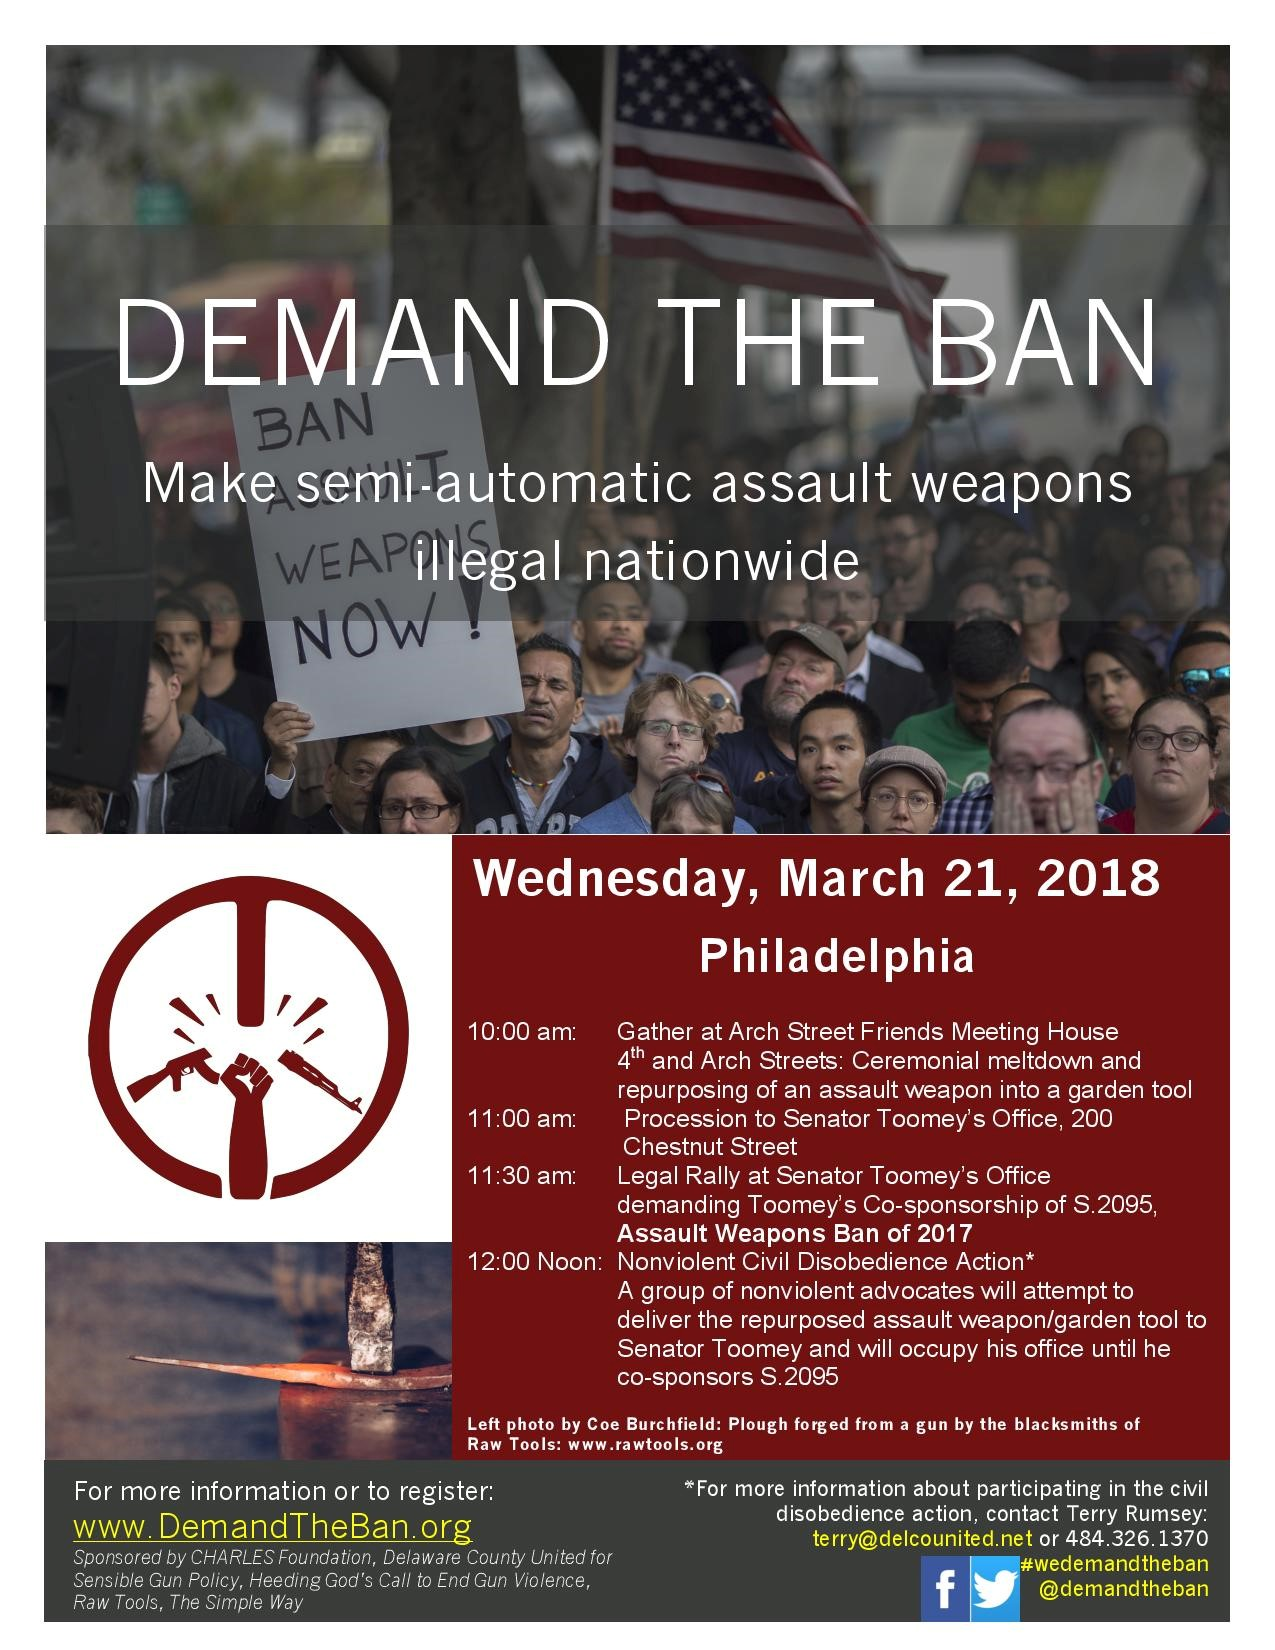 Demand the Ban on Semi-Automatic Assault Weapons—March 21